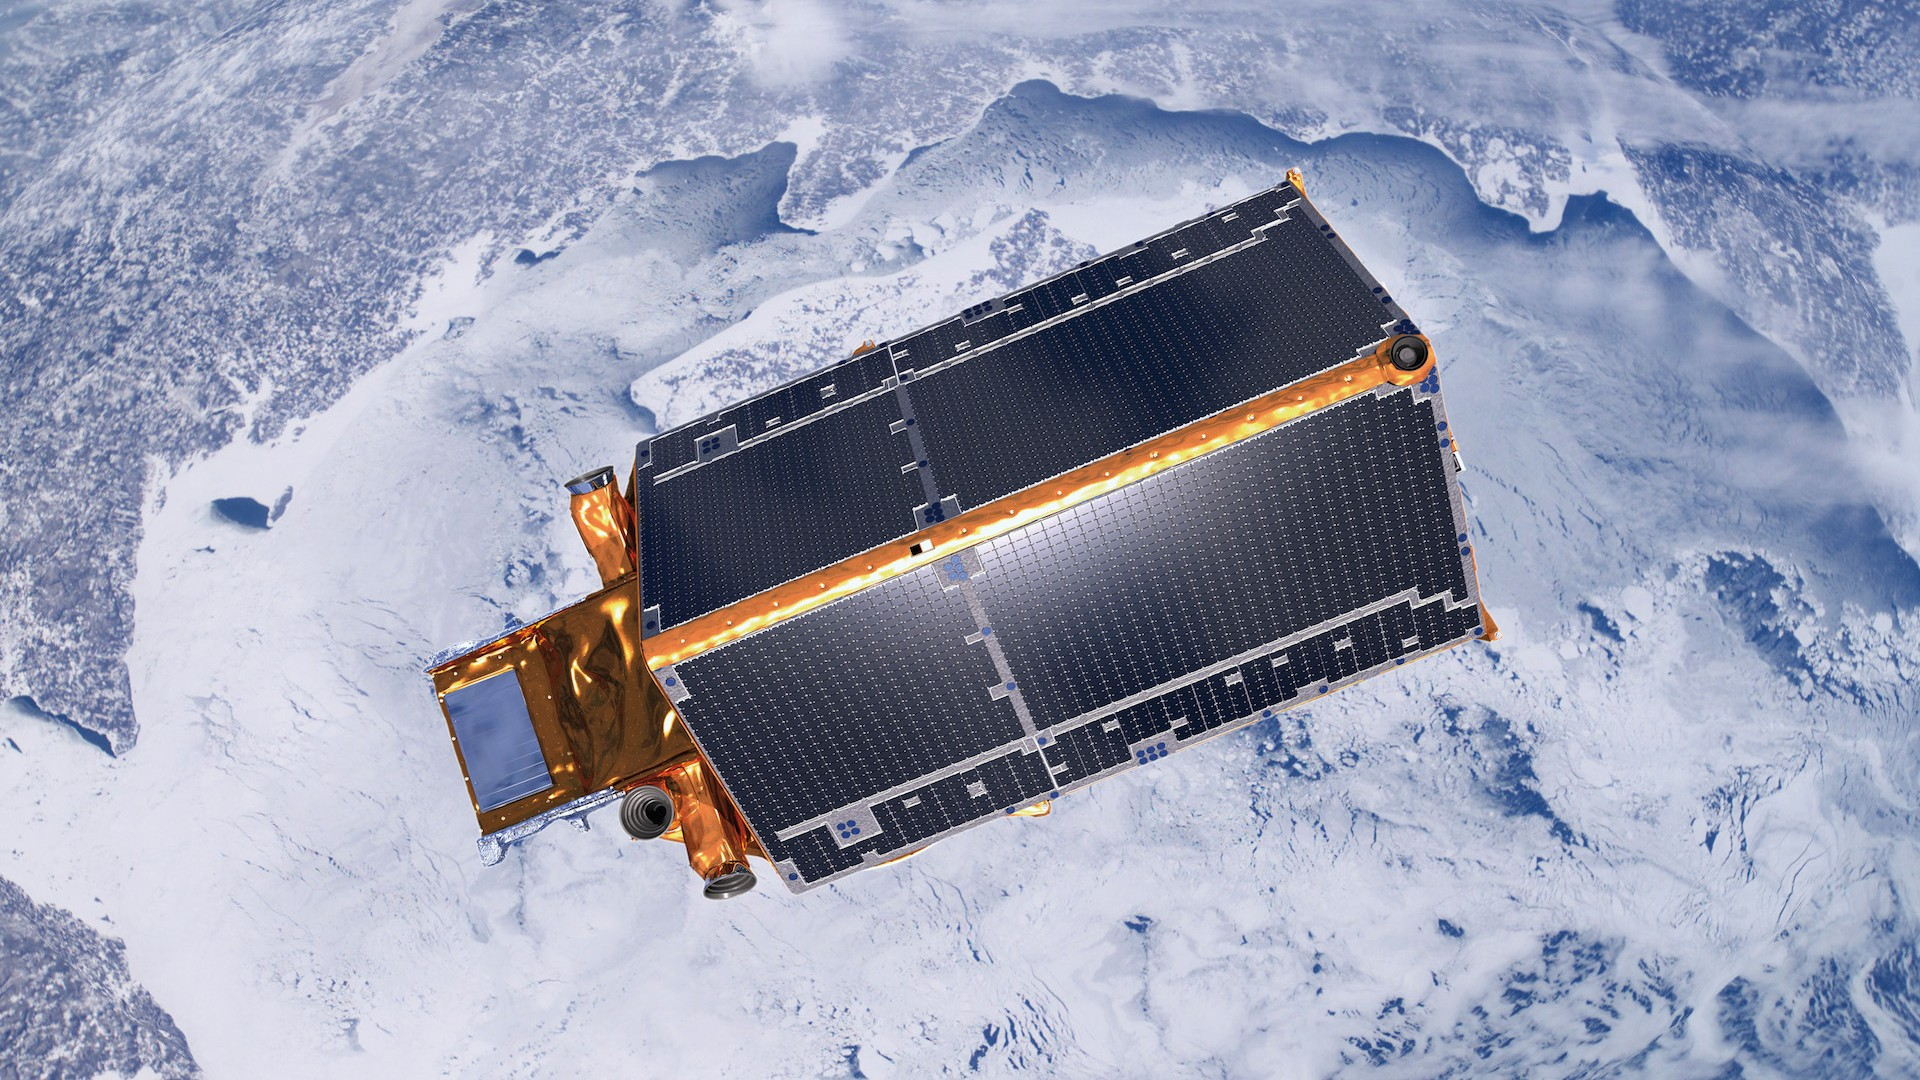 cryosat-ice-observer-in-orbit-e1435044280278